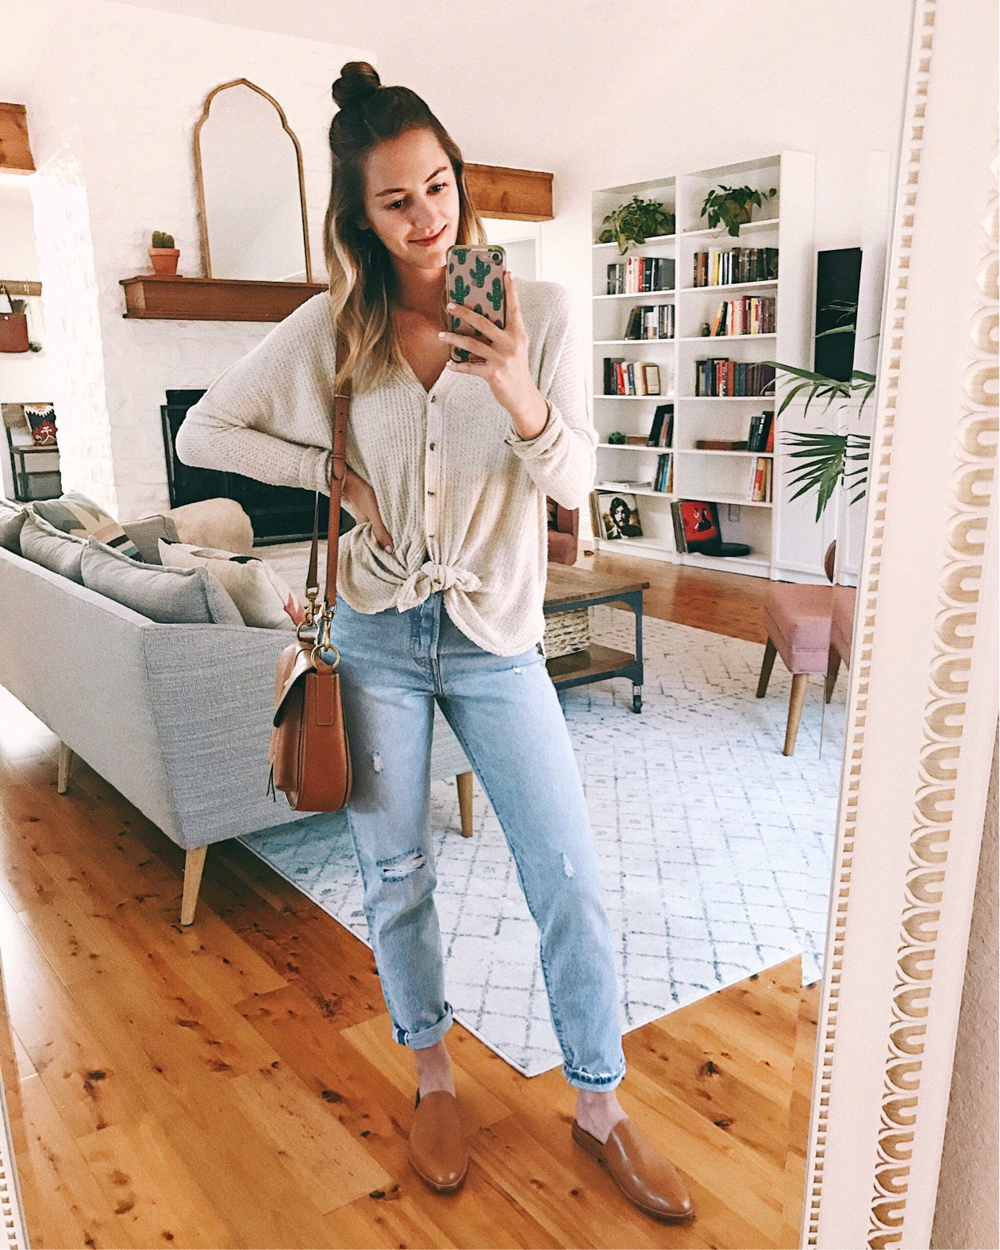 livvyland-blog-olivia-watson-instagram-roundup-livvylandblog-thermal-top-jeans-fall-outfit-idea